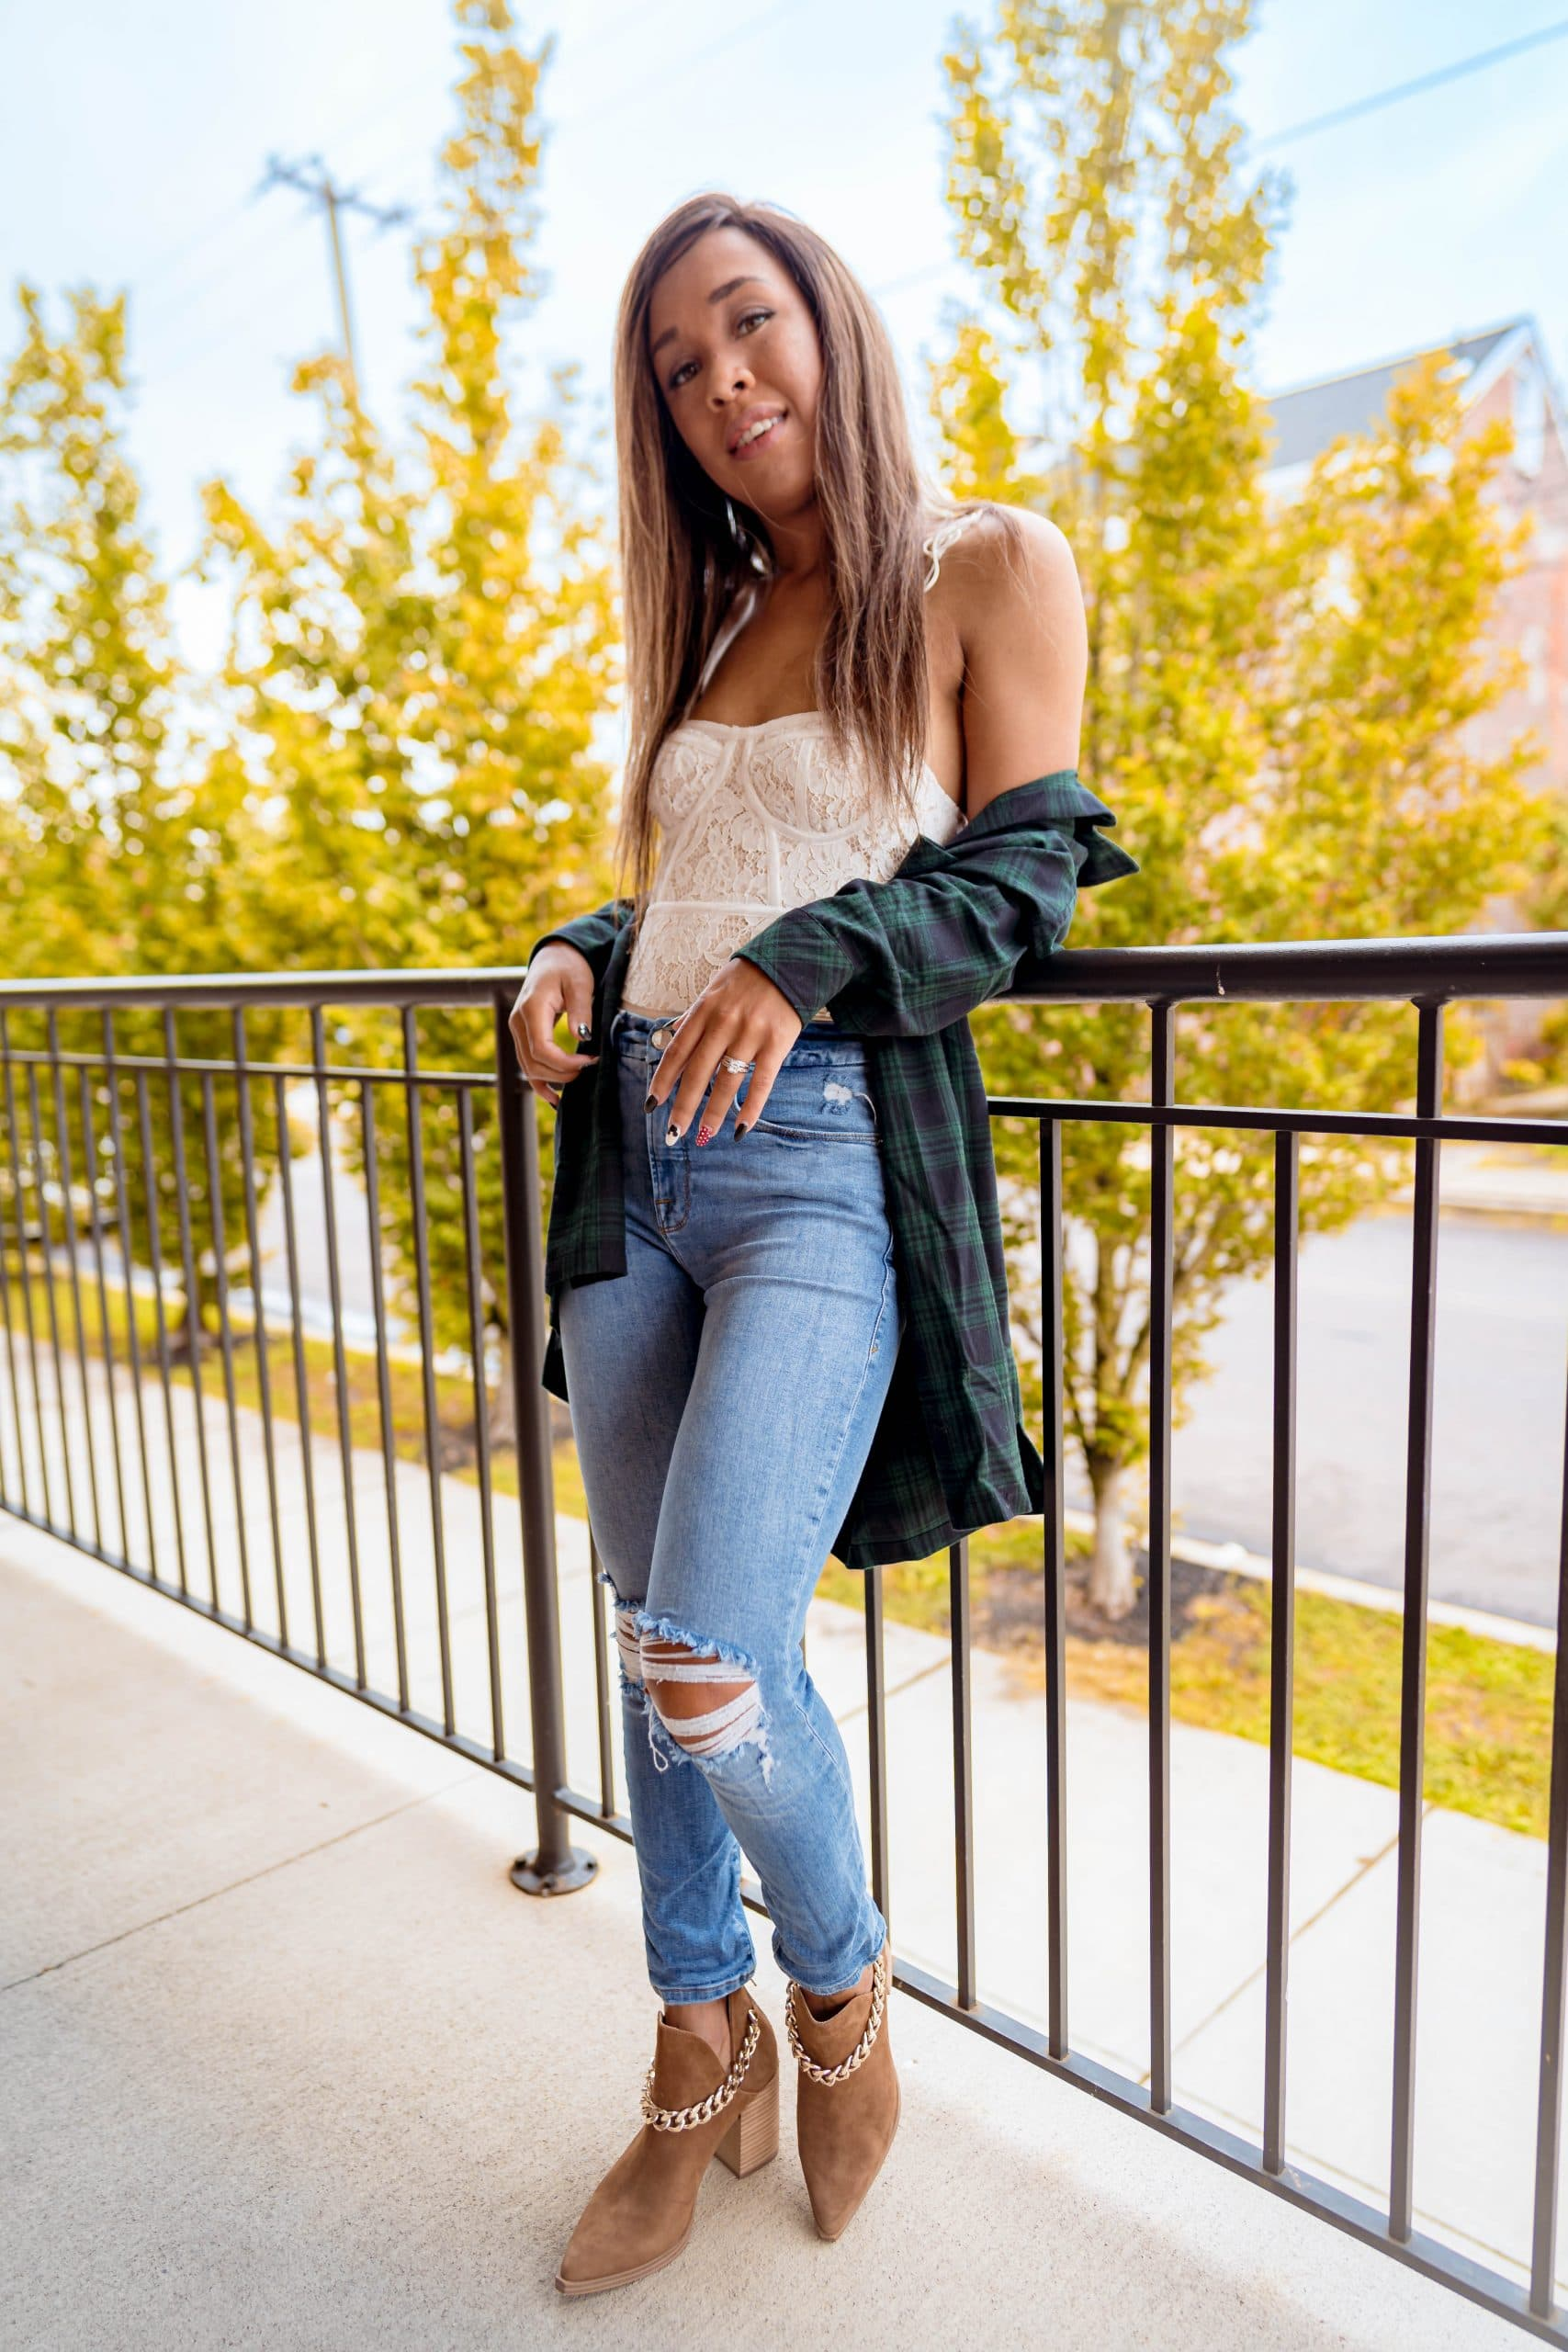 livinglesh style an oversized flannel top in the fall